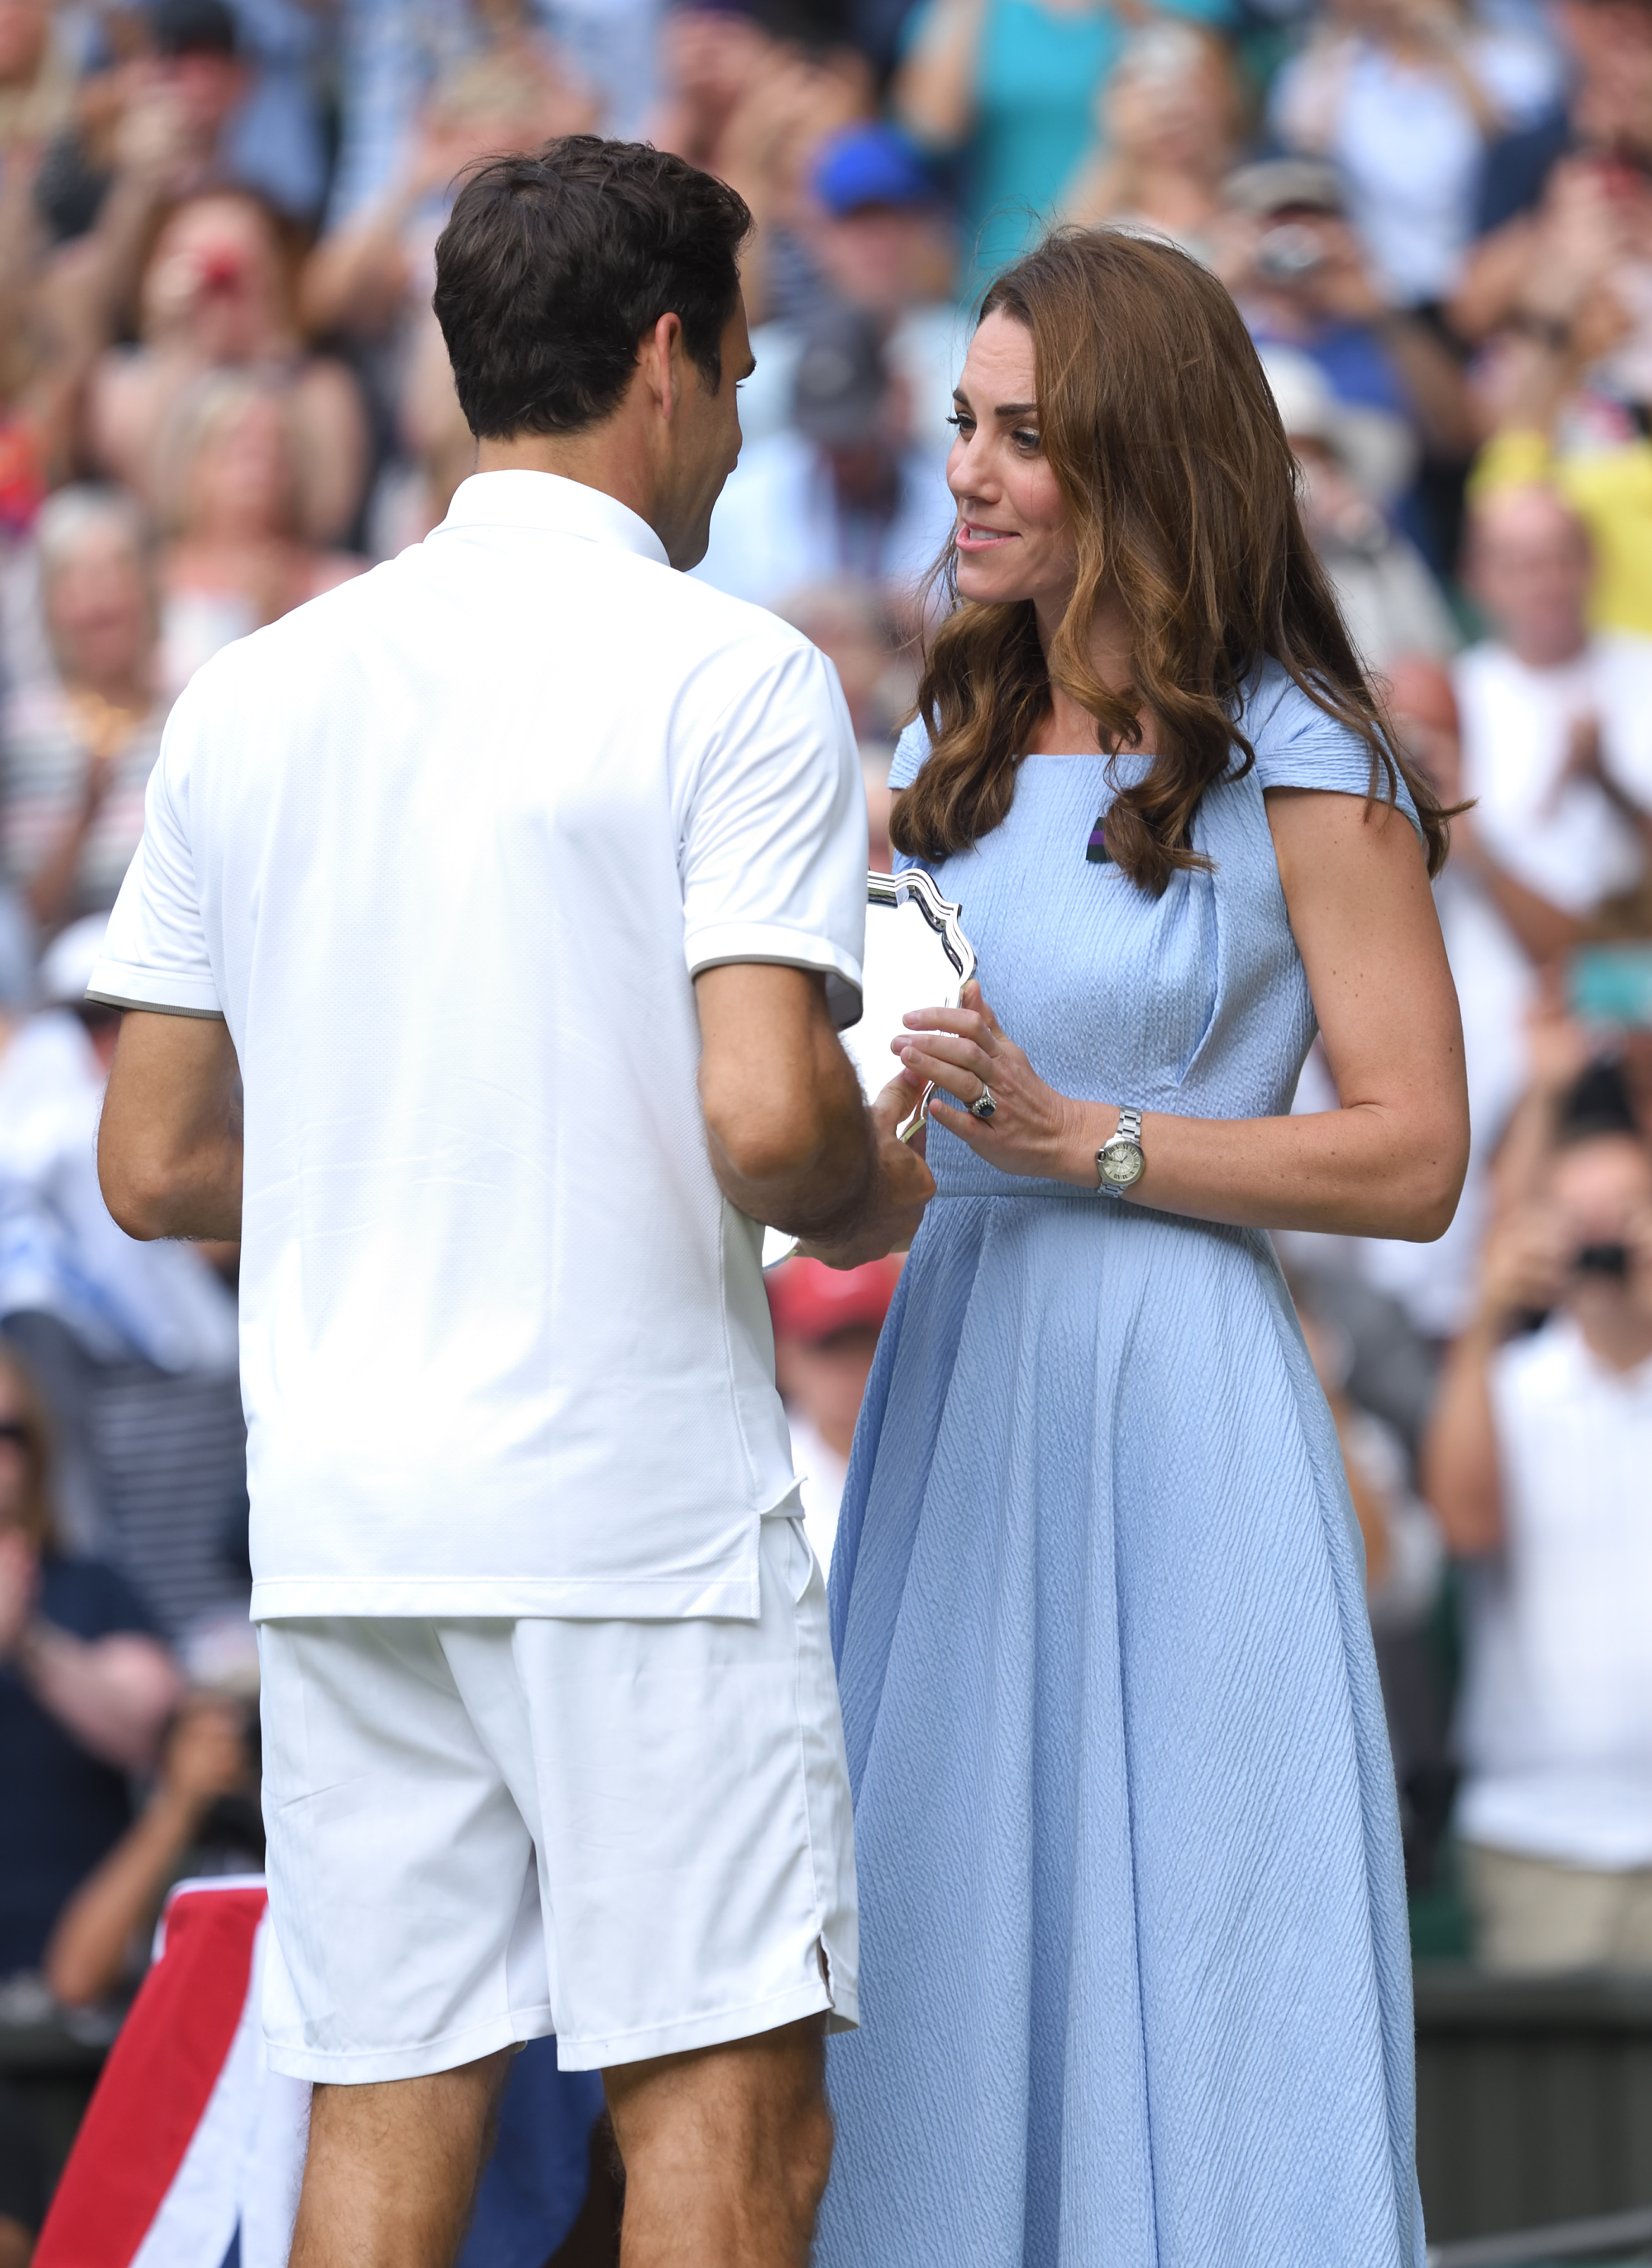 LONDON, ENGLAND - JULY 14: Roger Federer of Switzerland is presented with the runners-up trophy by Catherine, Duchess of Cambridge after his Men's Singles final against Novak Djokovic of Serbia during Day thirteen of the Wimbledon Tennis Championships at All England Lawn Tennis and Croquet Club on July 14, 2019 in London, England. (Photo by Karwai Tang/Getty Images)